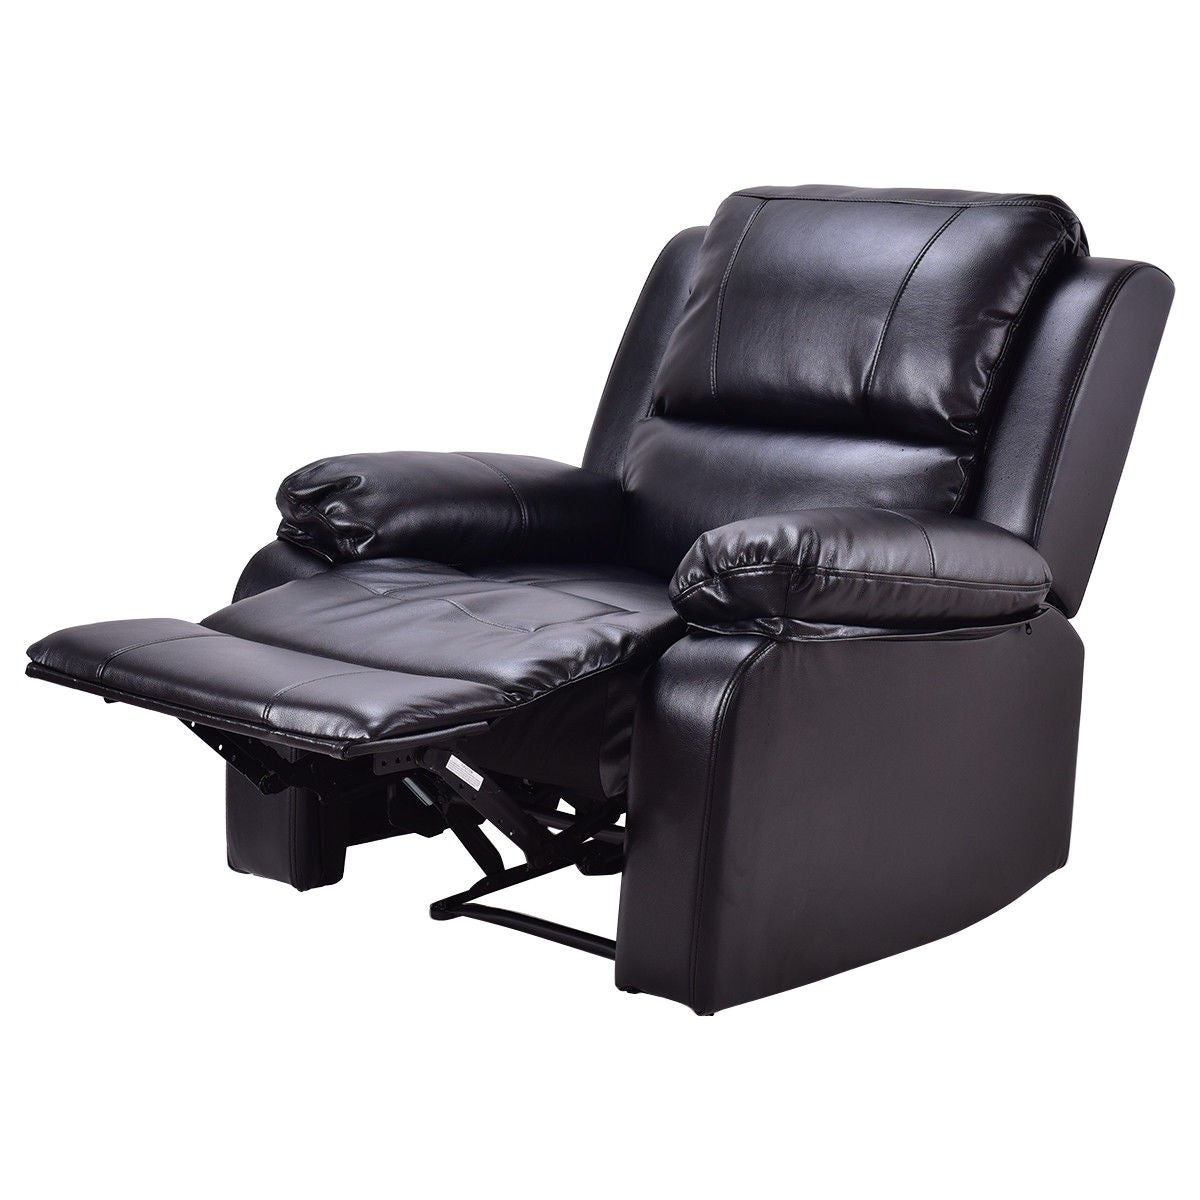 Costway Manual Recliner Sofa Lounge Chair Pu Leather Home Theater Padded Reclining Black Free Shipping Today 18770717